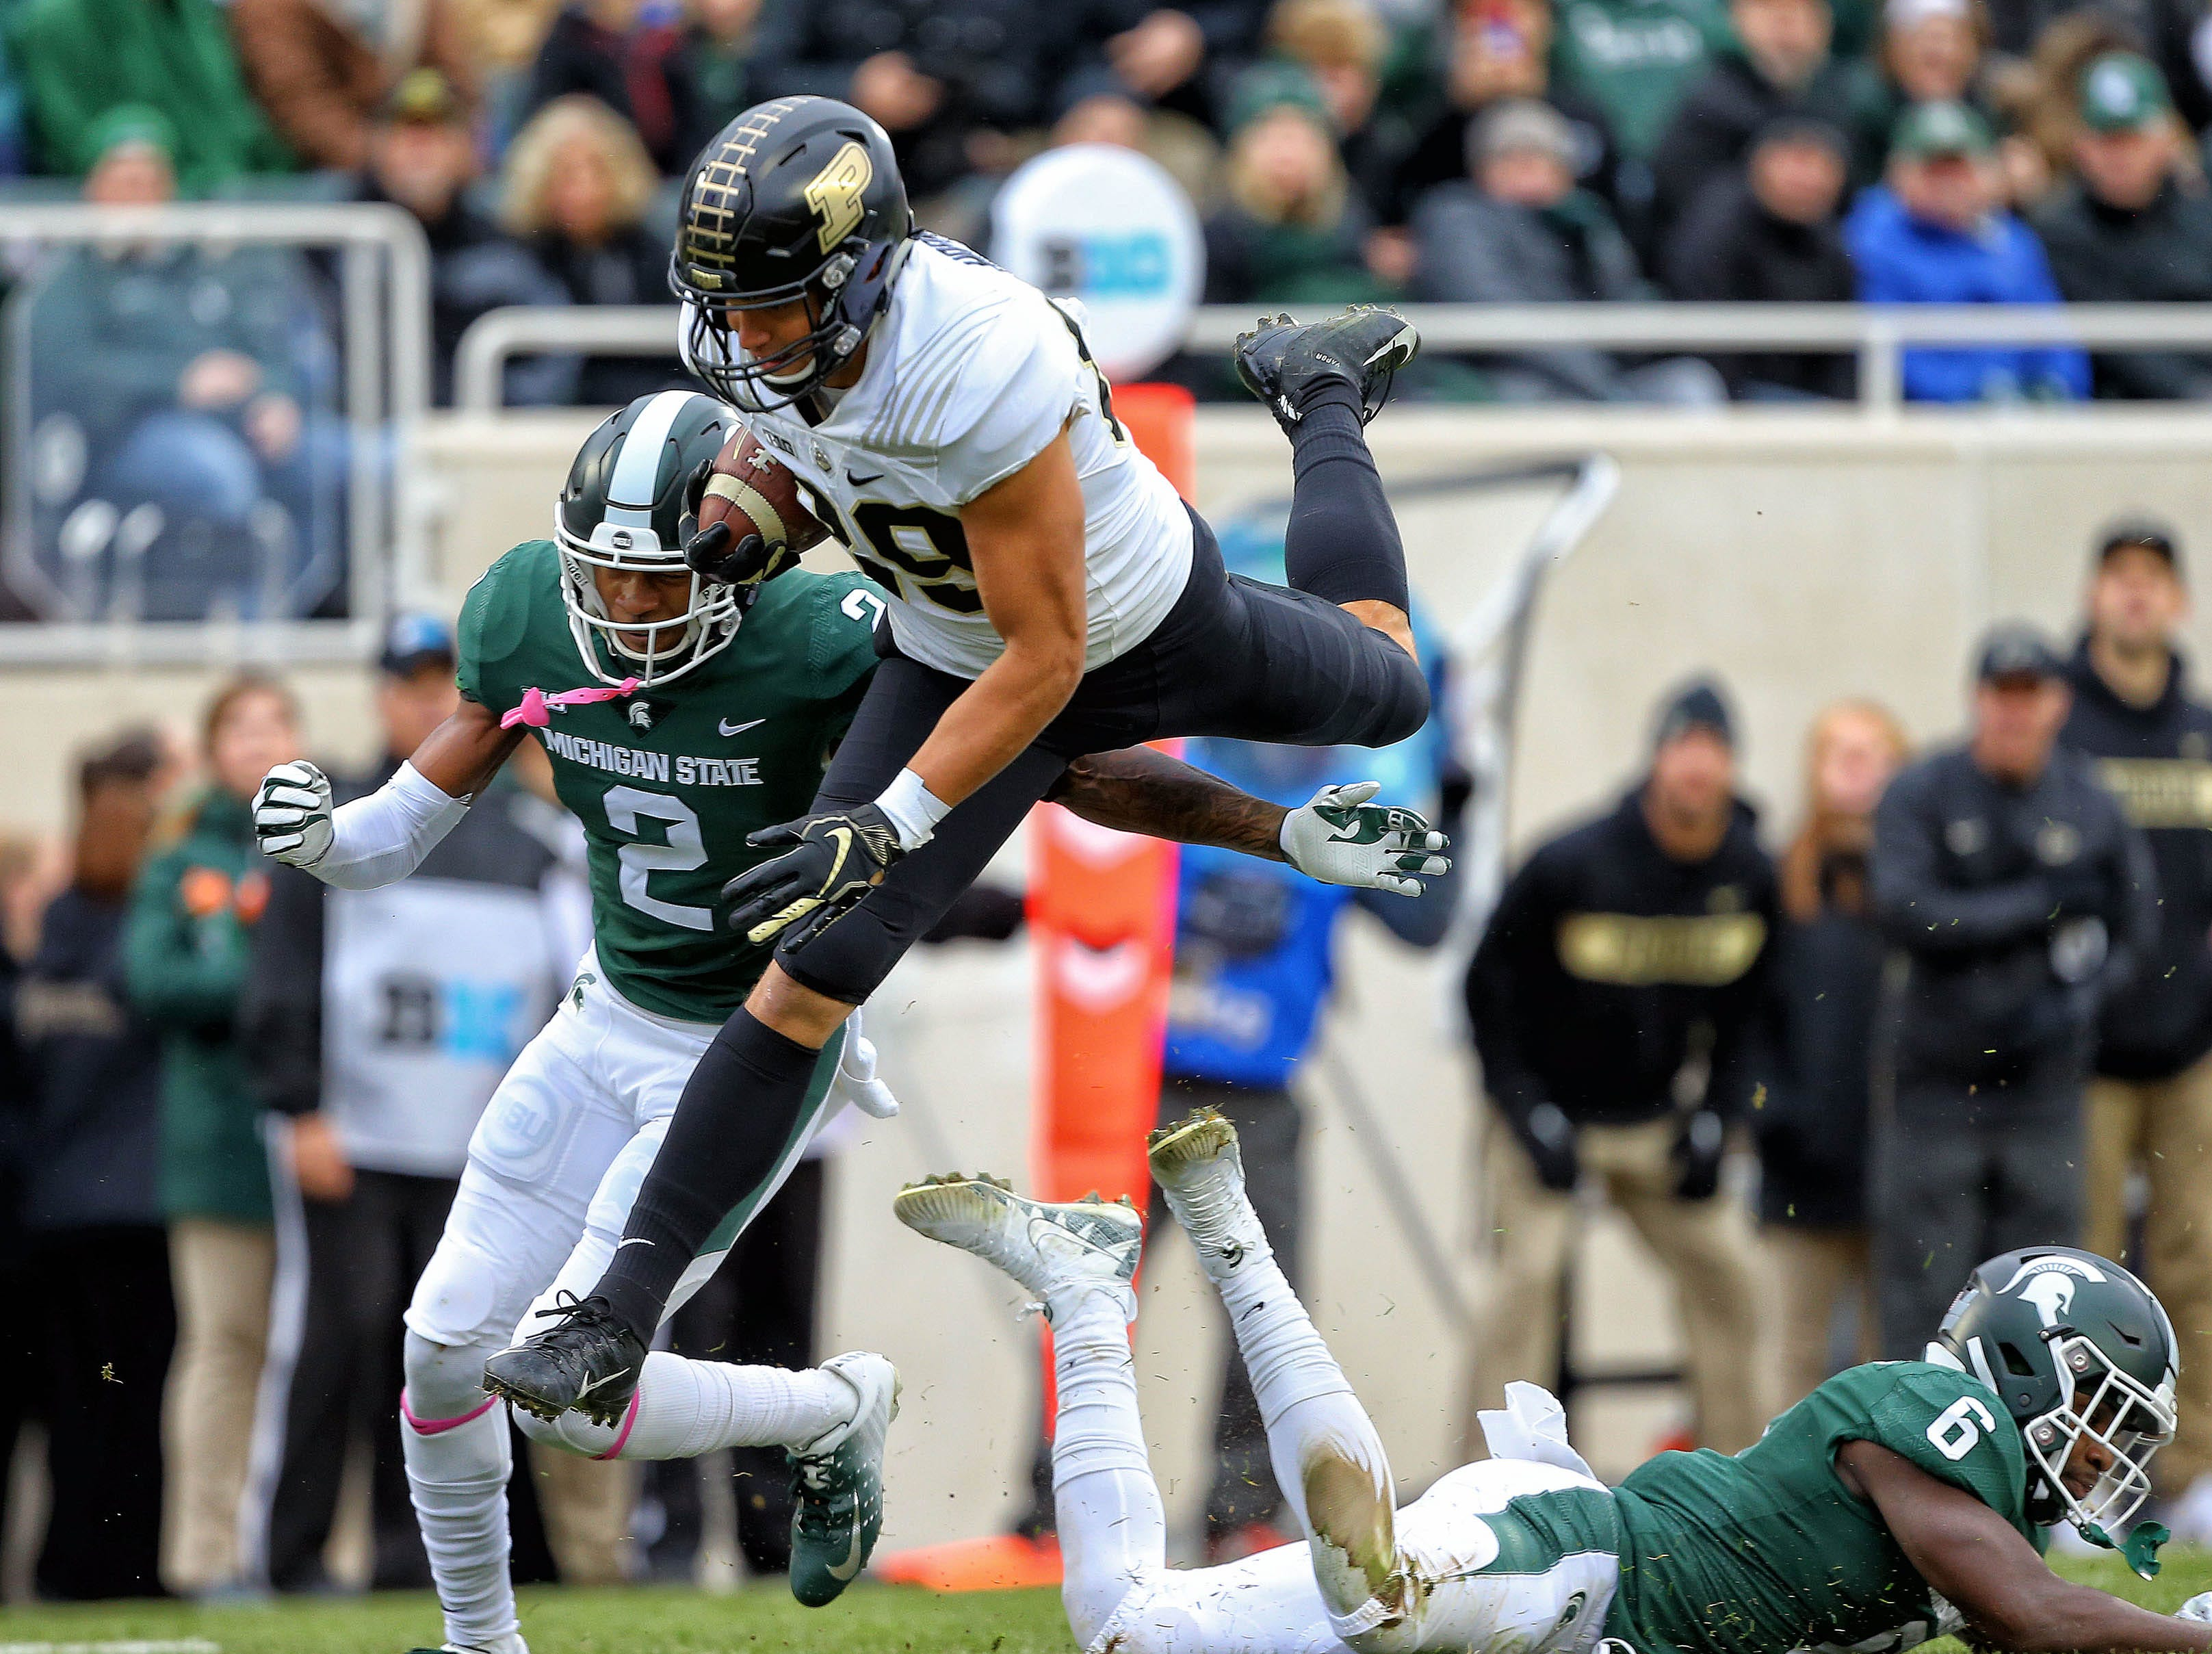 Oct 27, 2018; East Lansing, MI, USA; Purdue Boilermakers tight end Brycen Hopkins (89) hurdles Michigan State Spartans safety David Dowell (6) during the first quarter of a game at Spartan Stadium. Mandatory Credit: Mike Carter-USA TODAY Sports